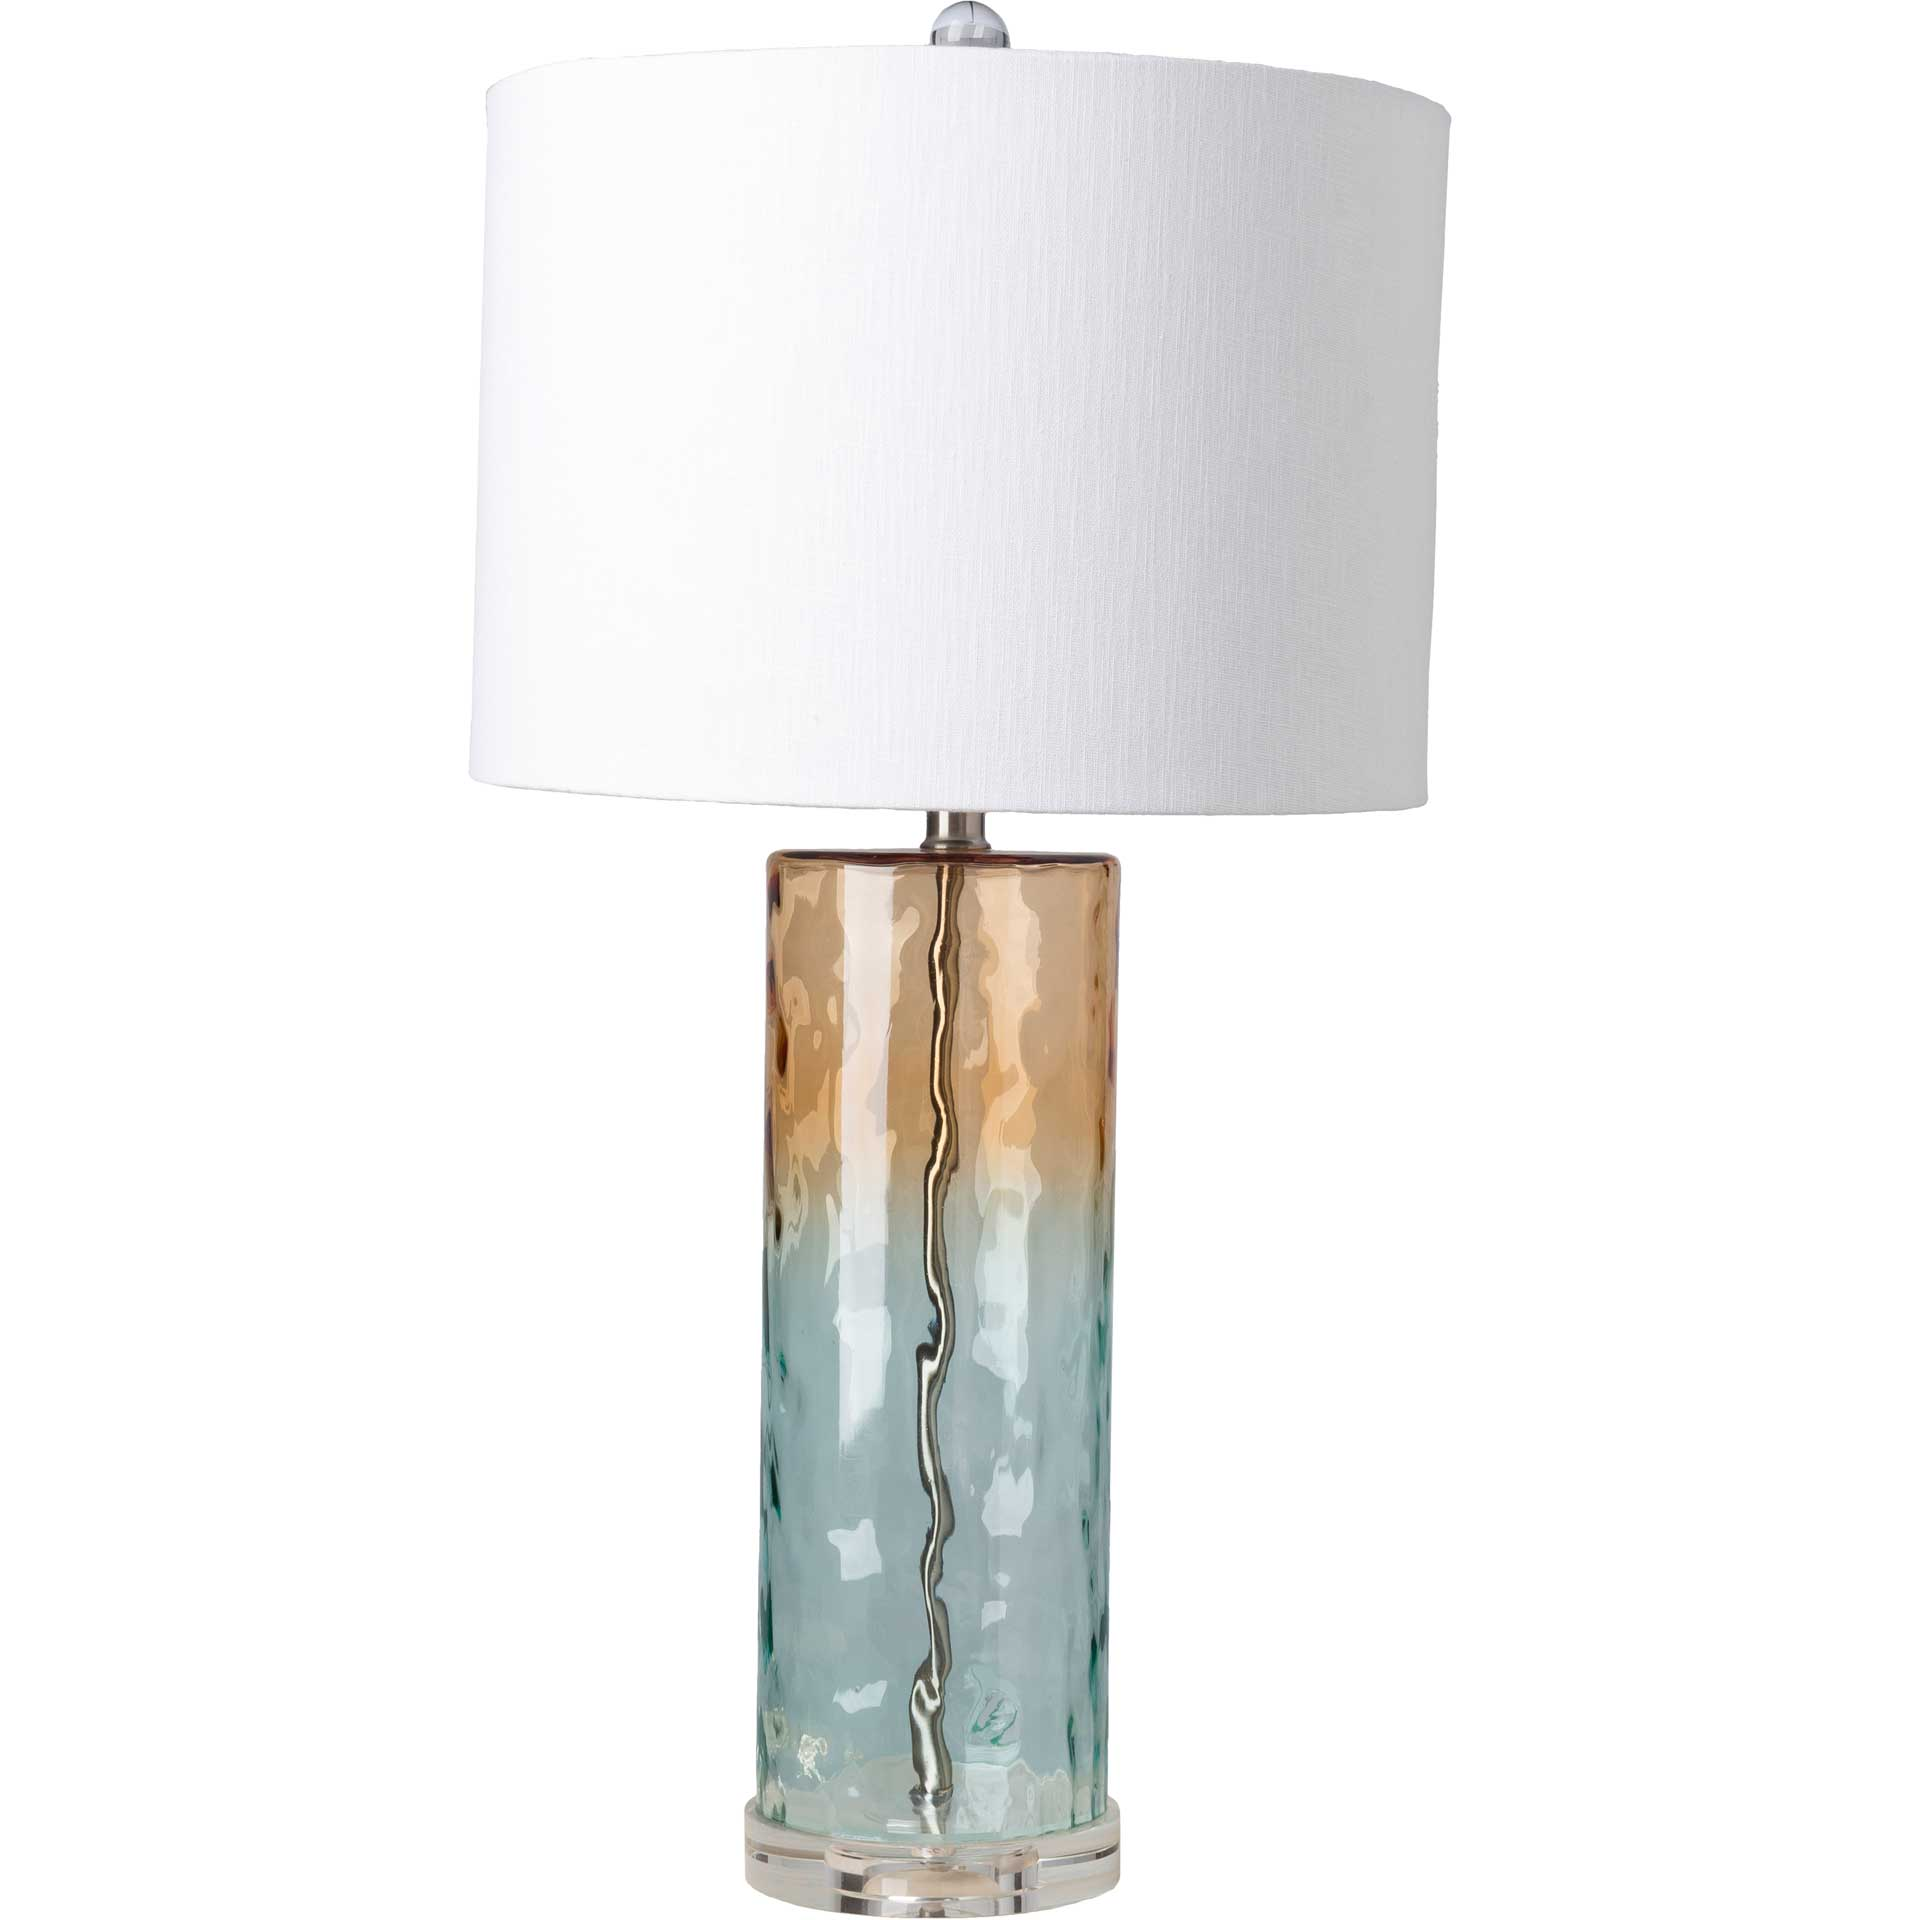 Ava Table Lamp Camel/White/Aqua